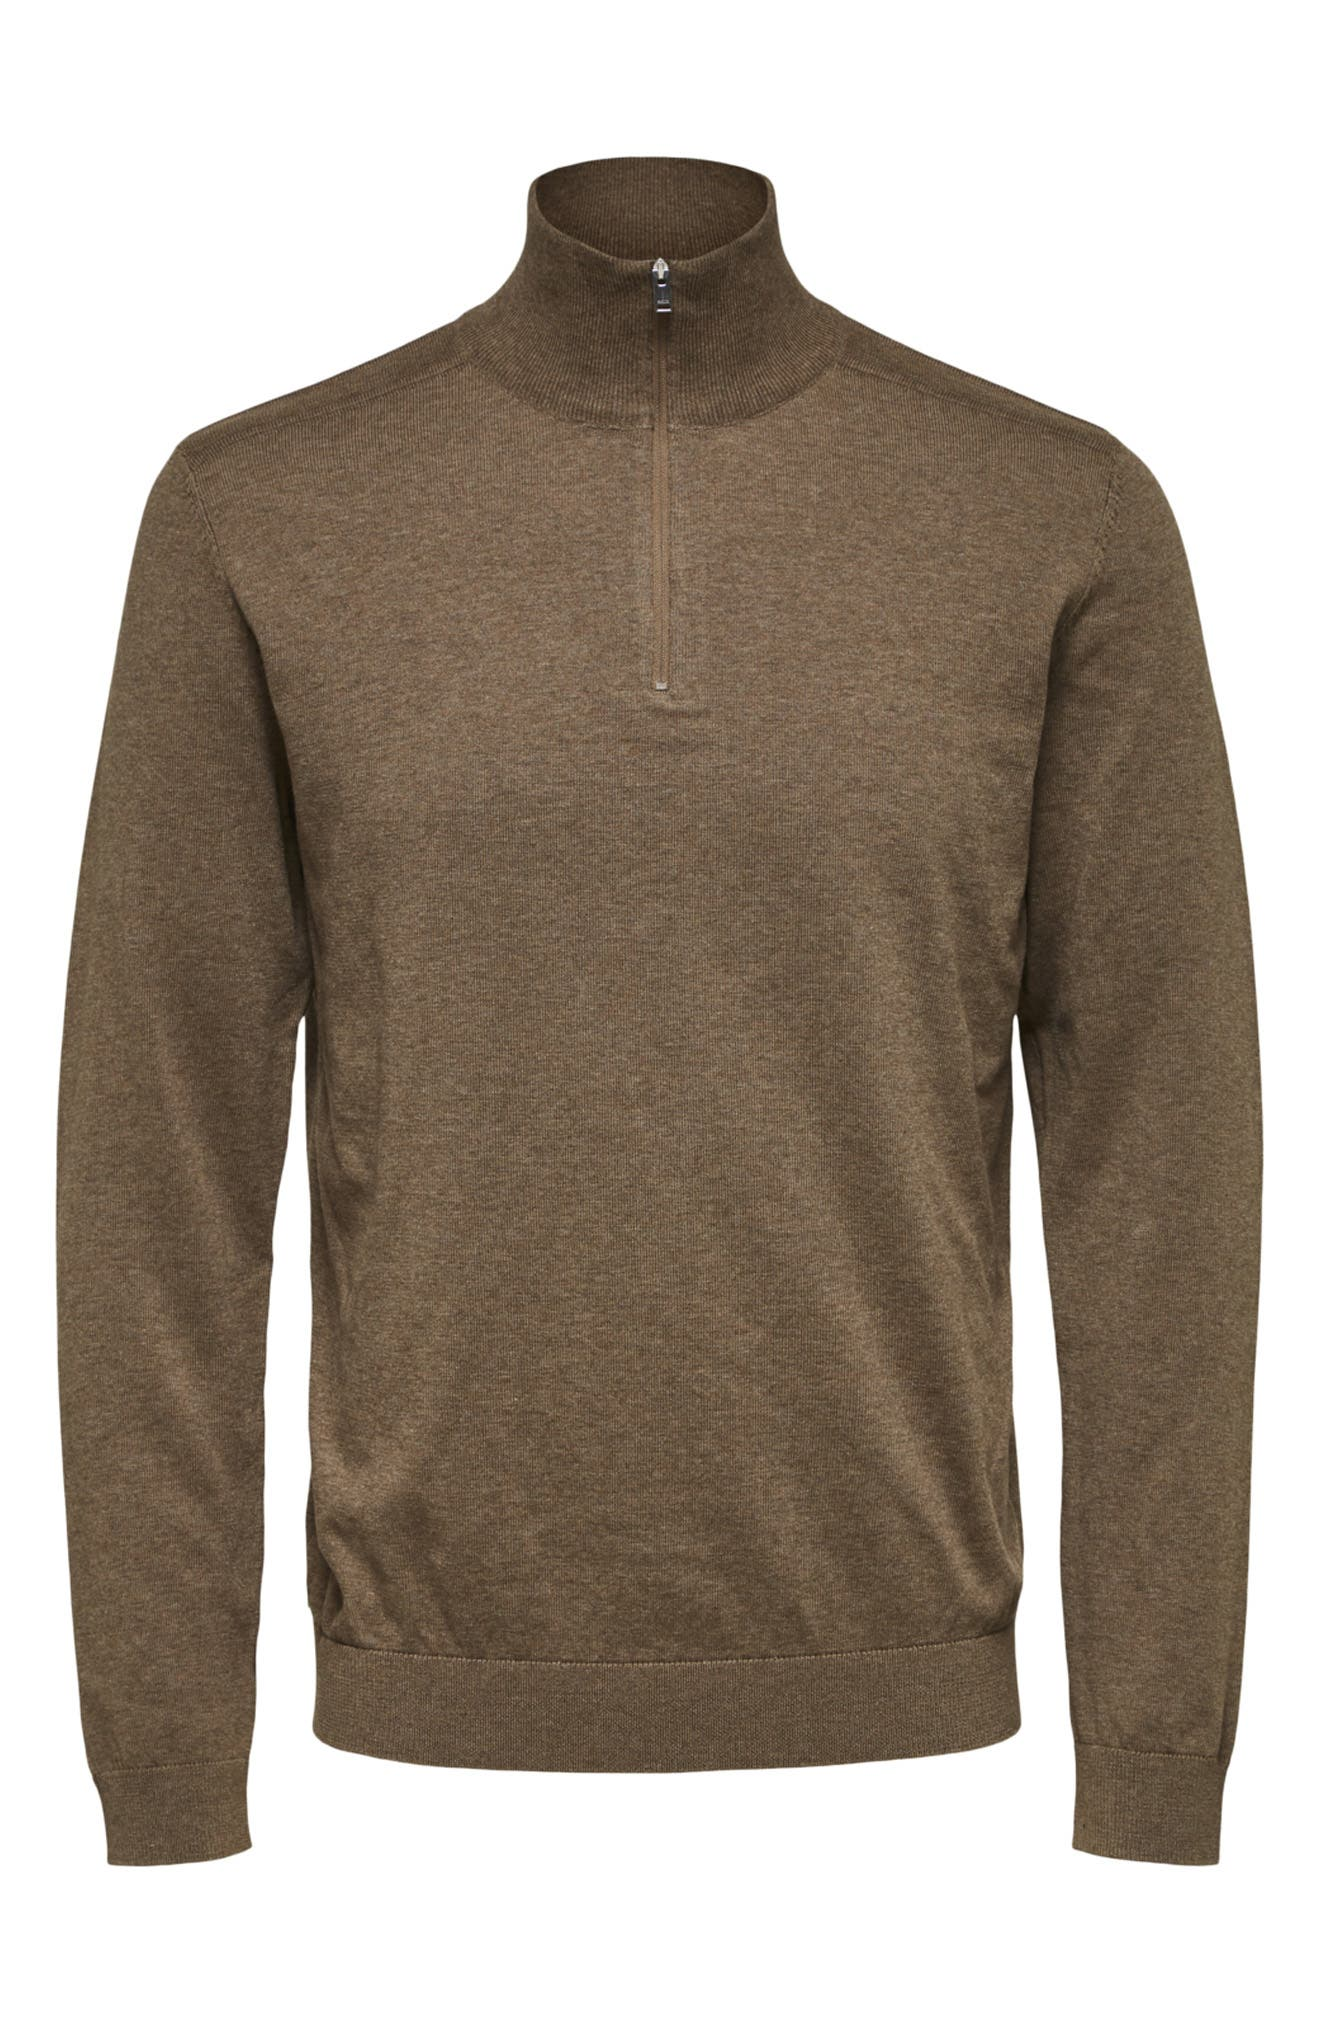 SELECTED HOMME Slhkent Crew Neck B su/éter para Hombre